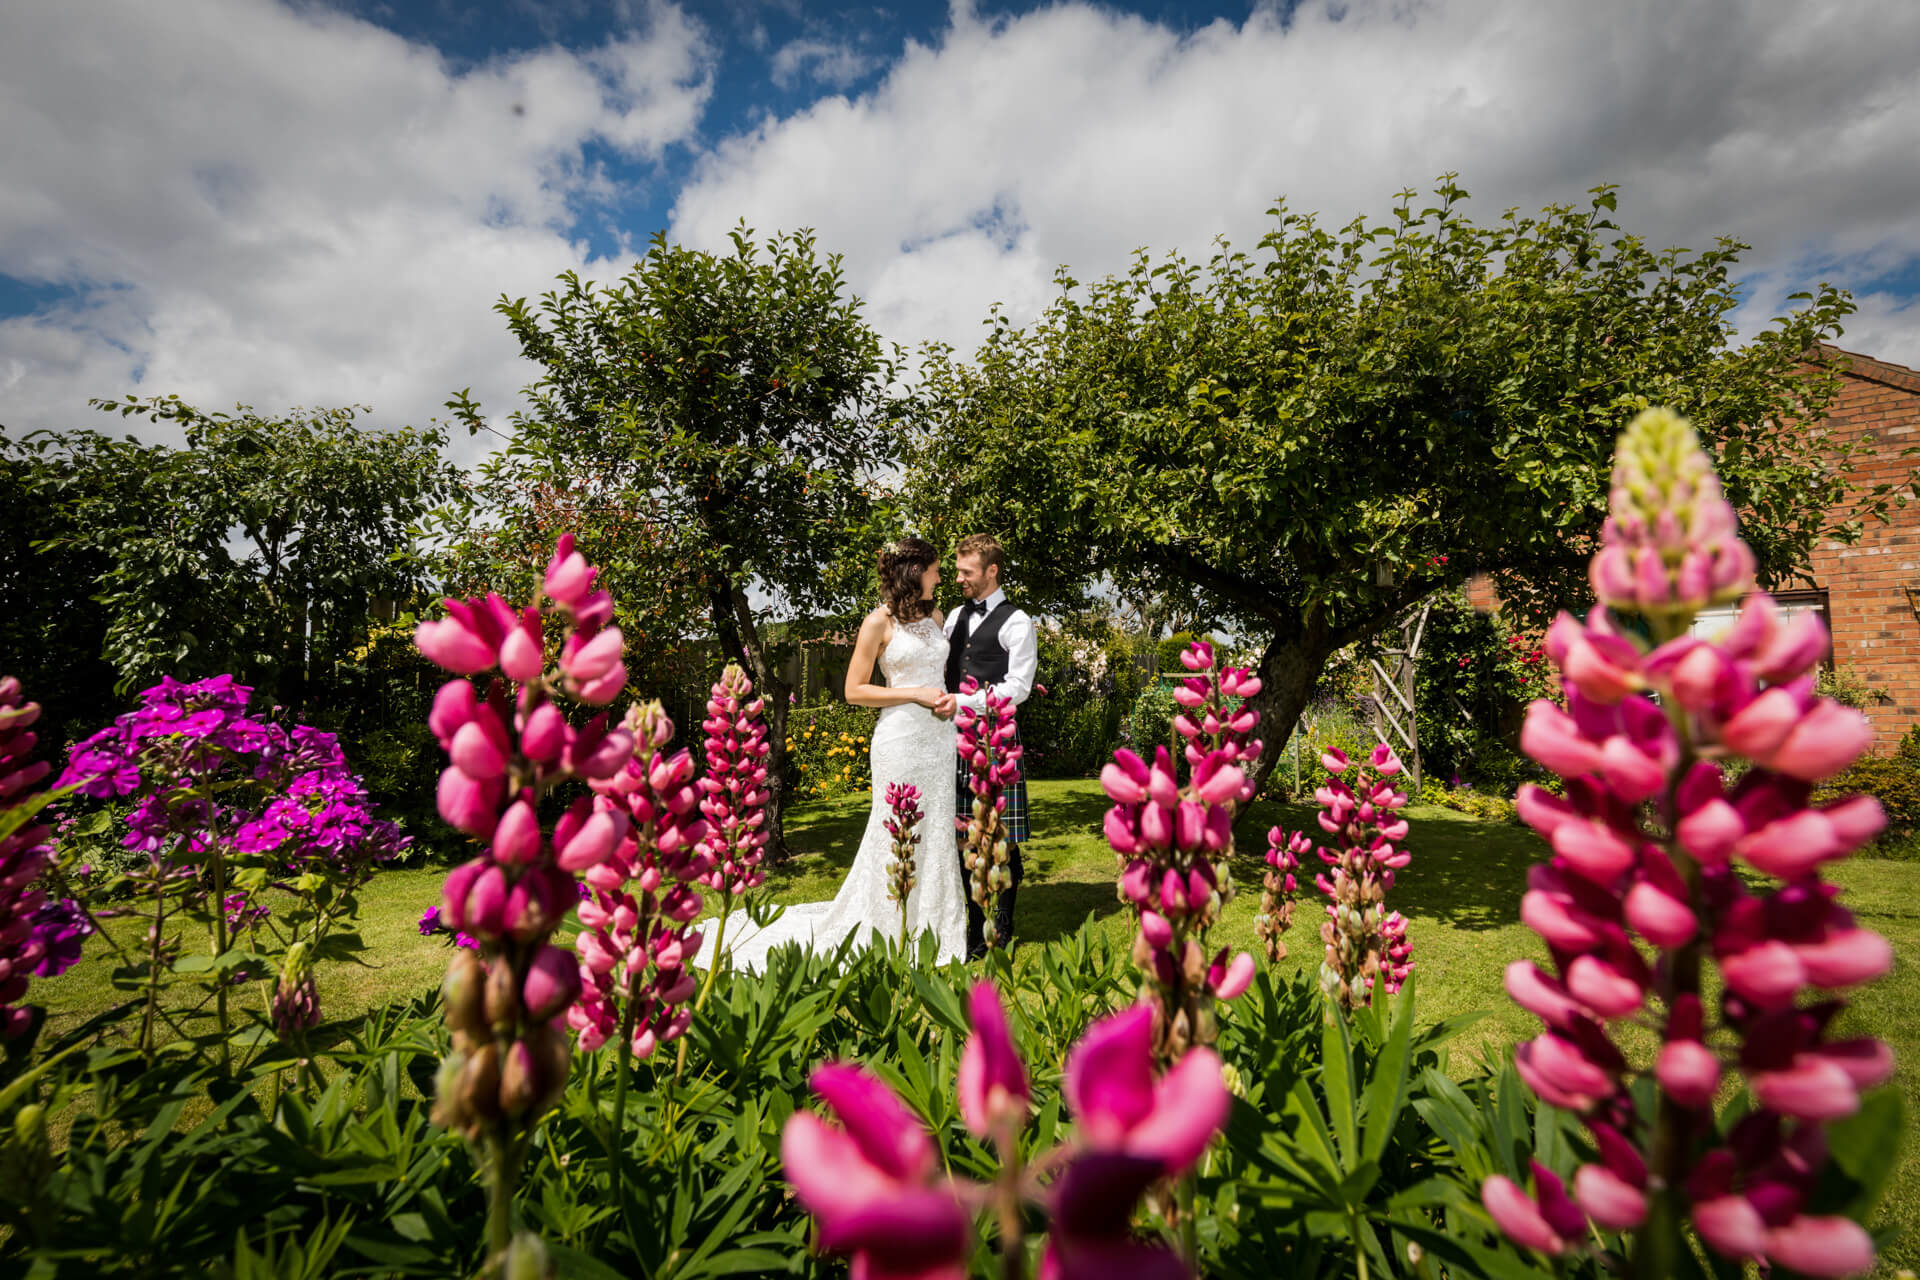 couple standing together in front of some pink flowers in a york garden